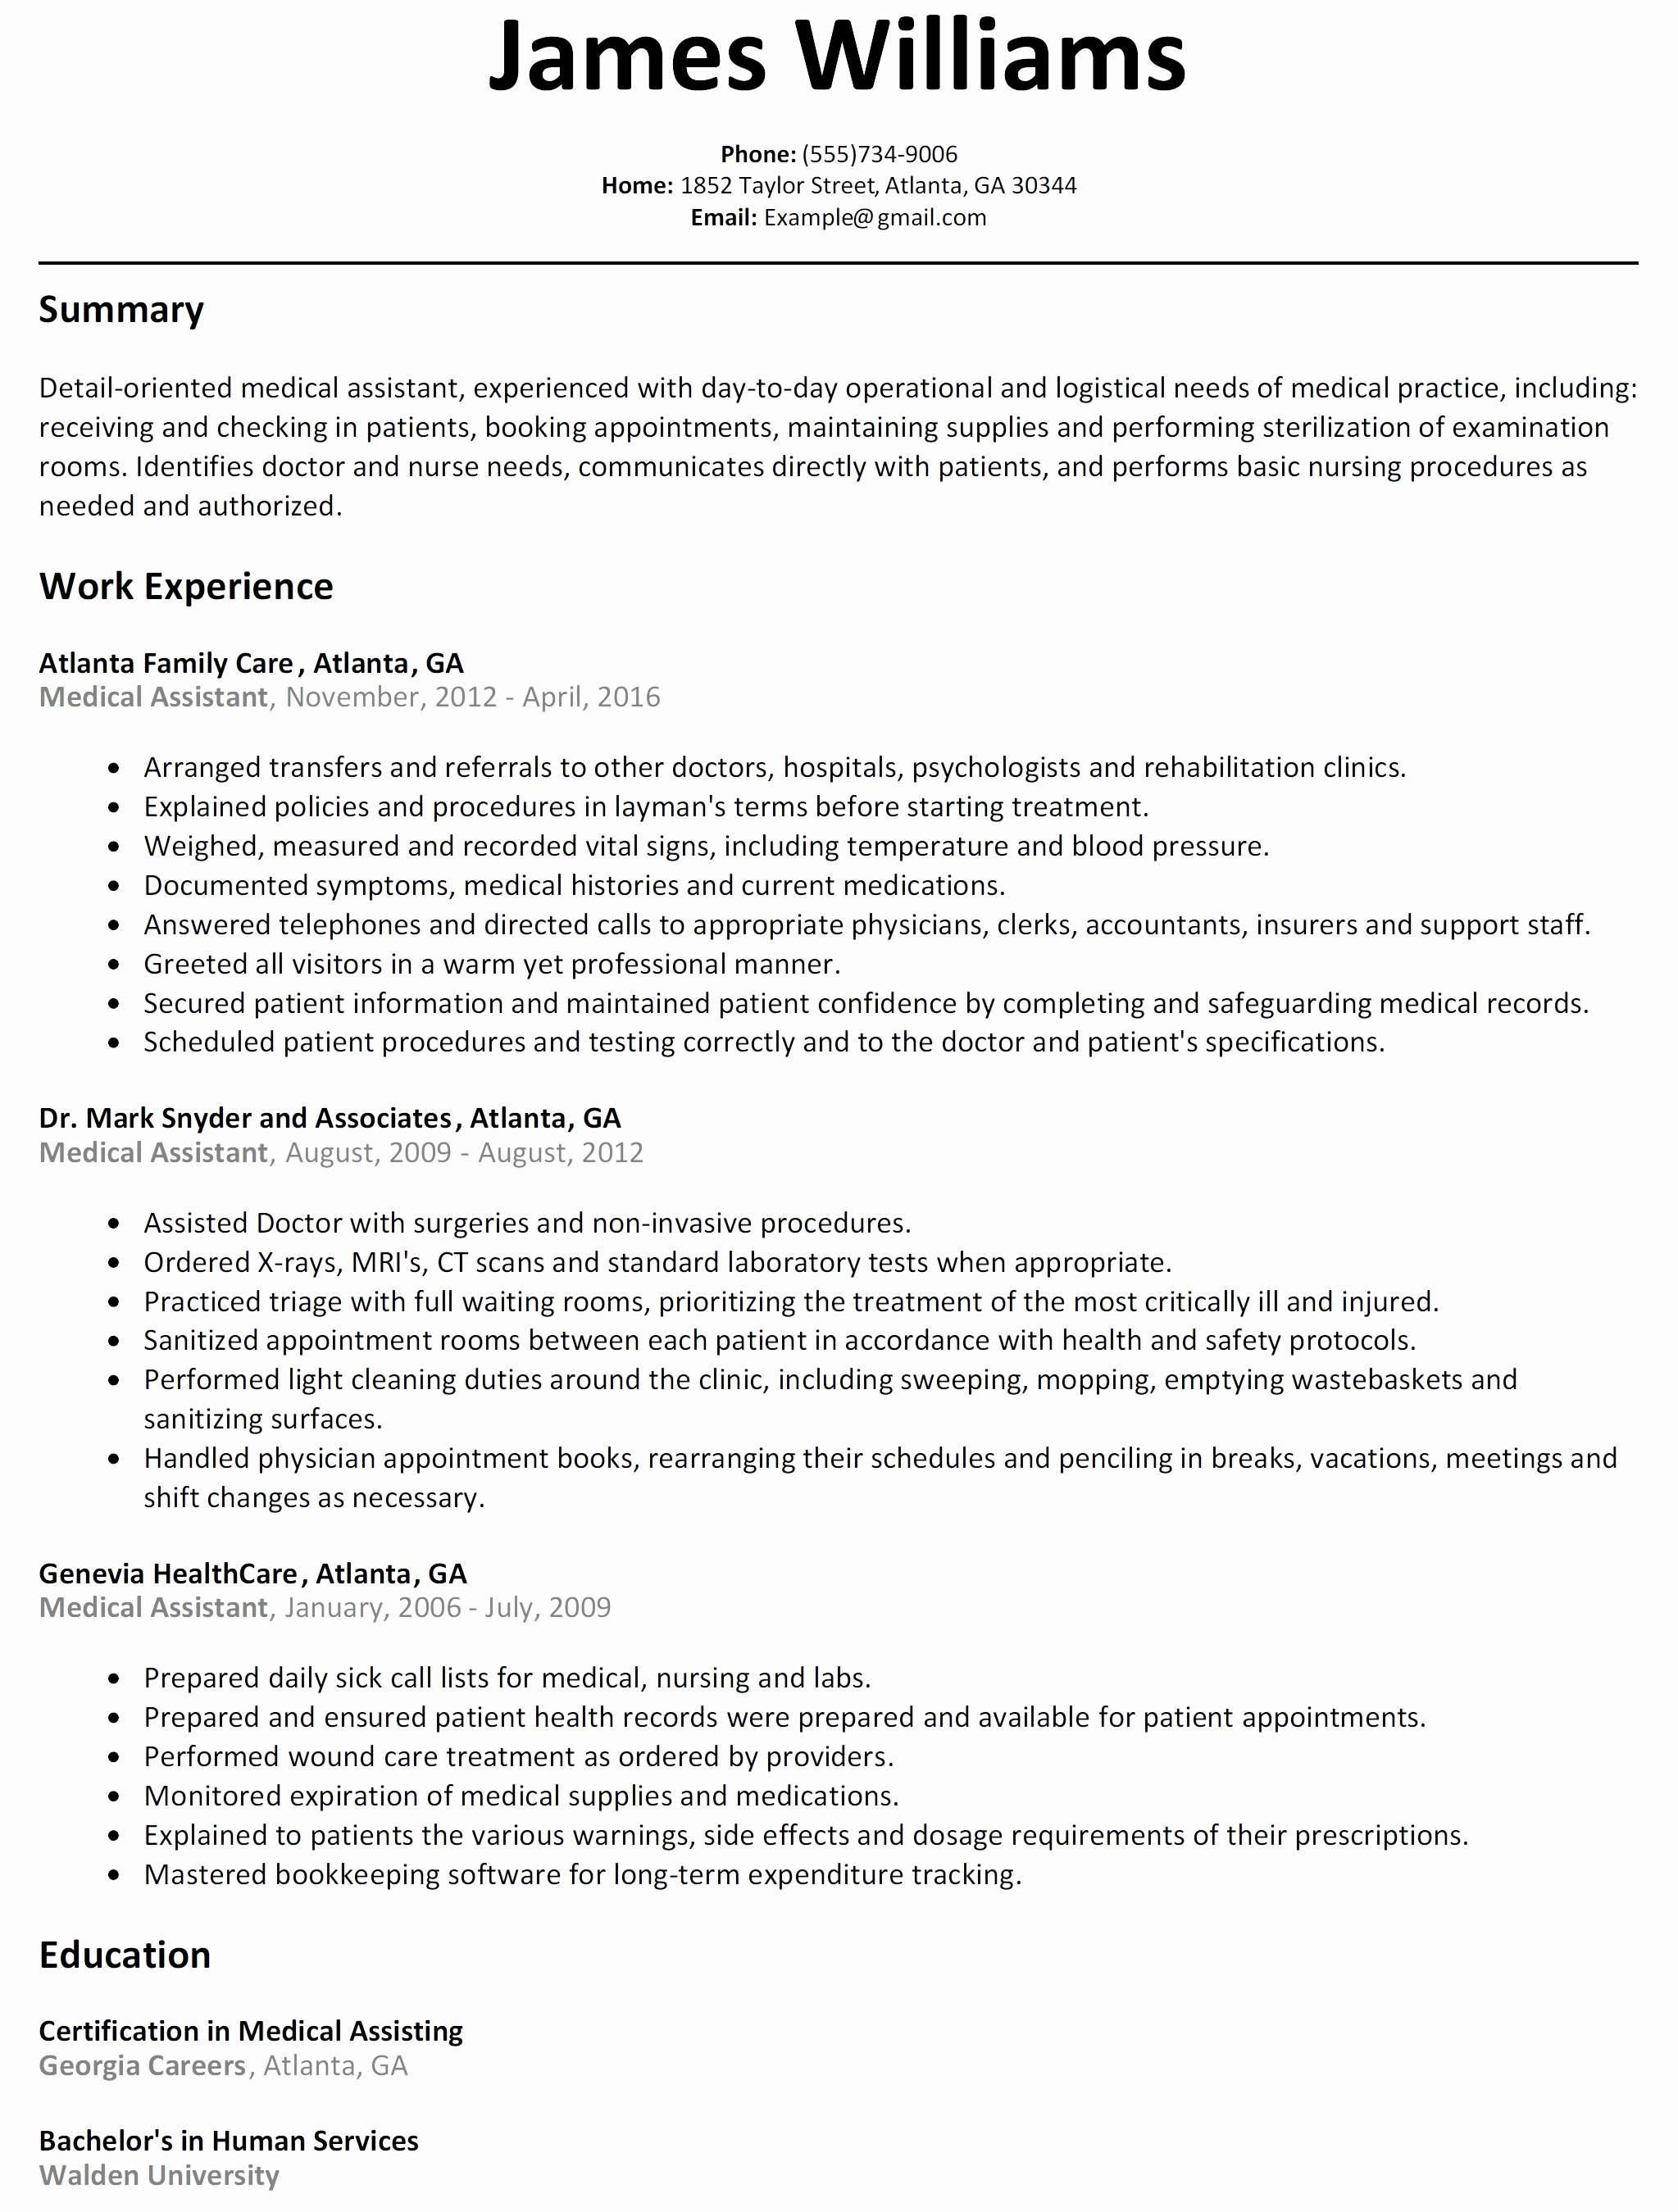 Medical School Application Resume - New How to Write A College Resume Template